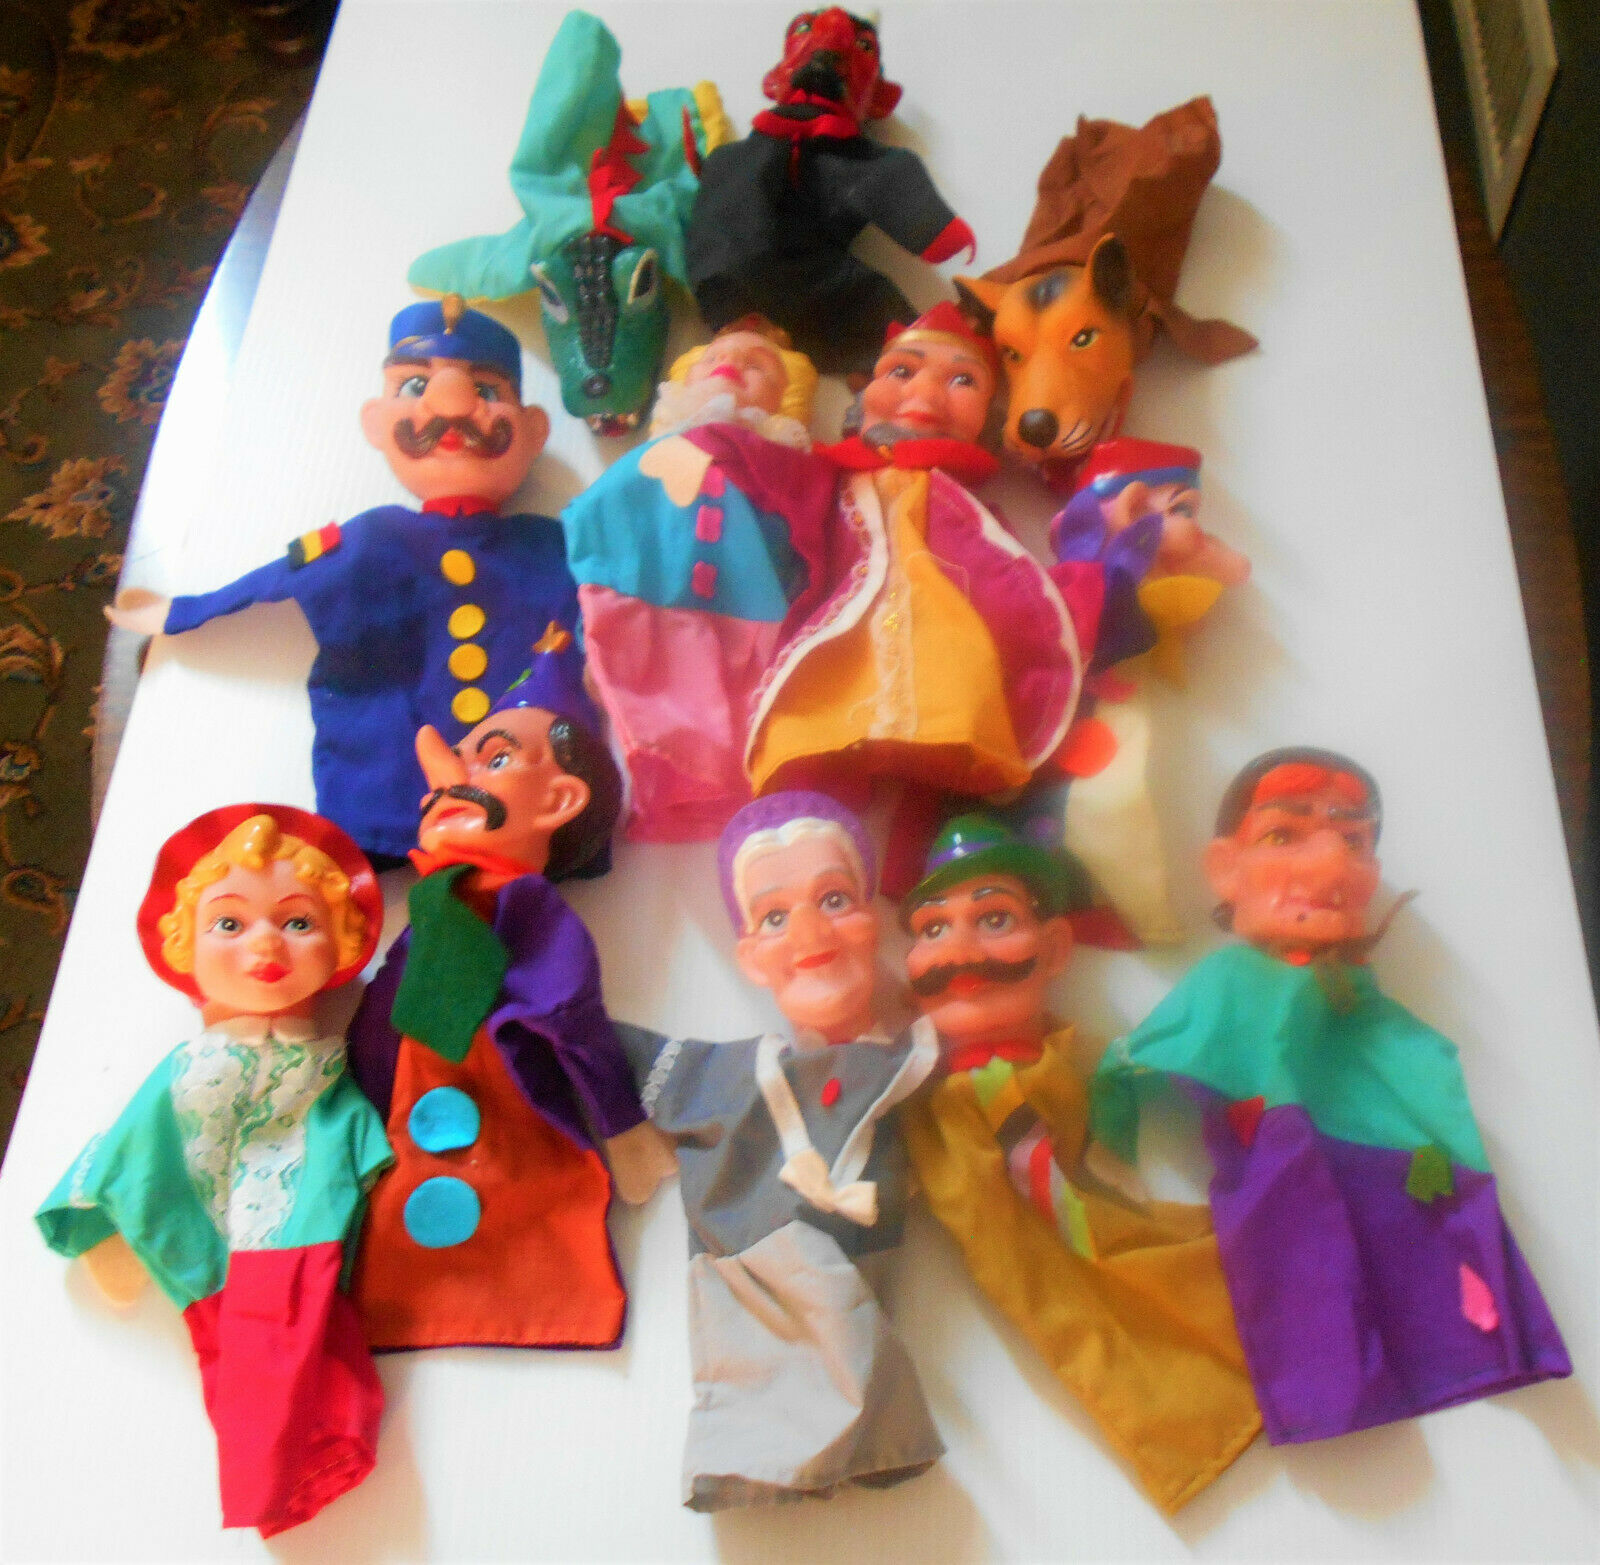 LOT of 12 1960's-70's Hand Puppets MISTER ROBERTS, King, Queen, Devil, Joker +++